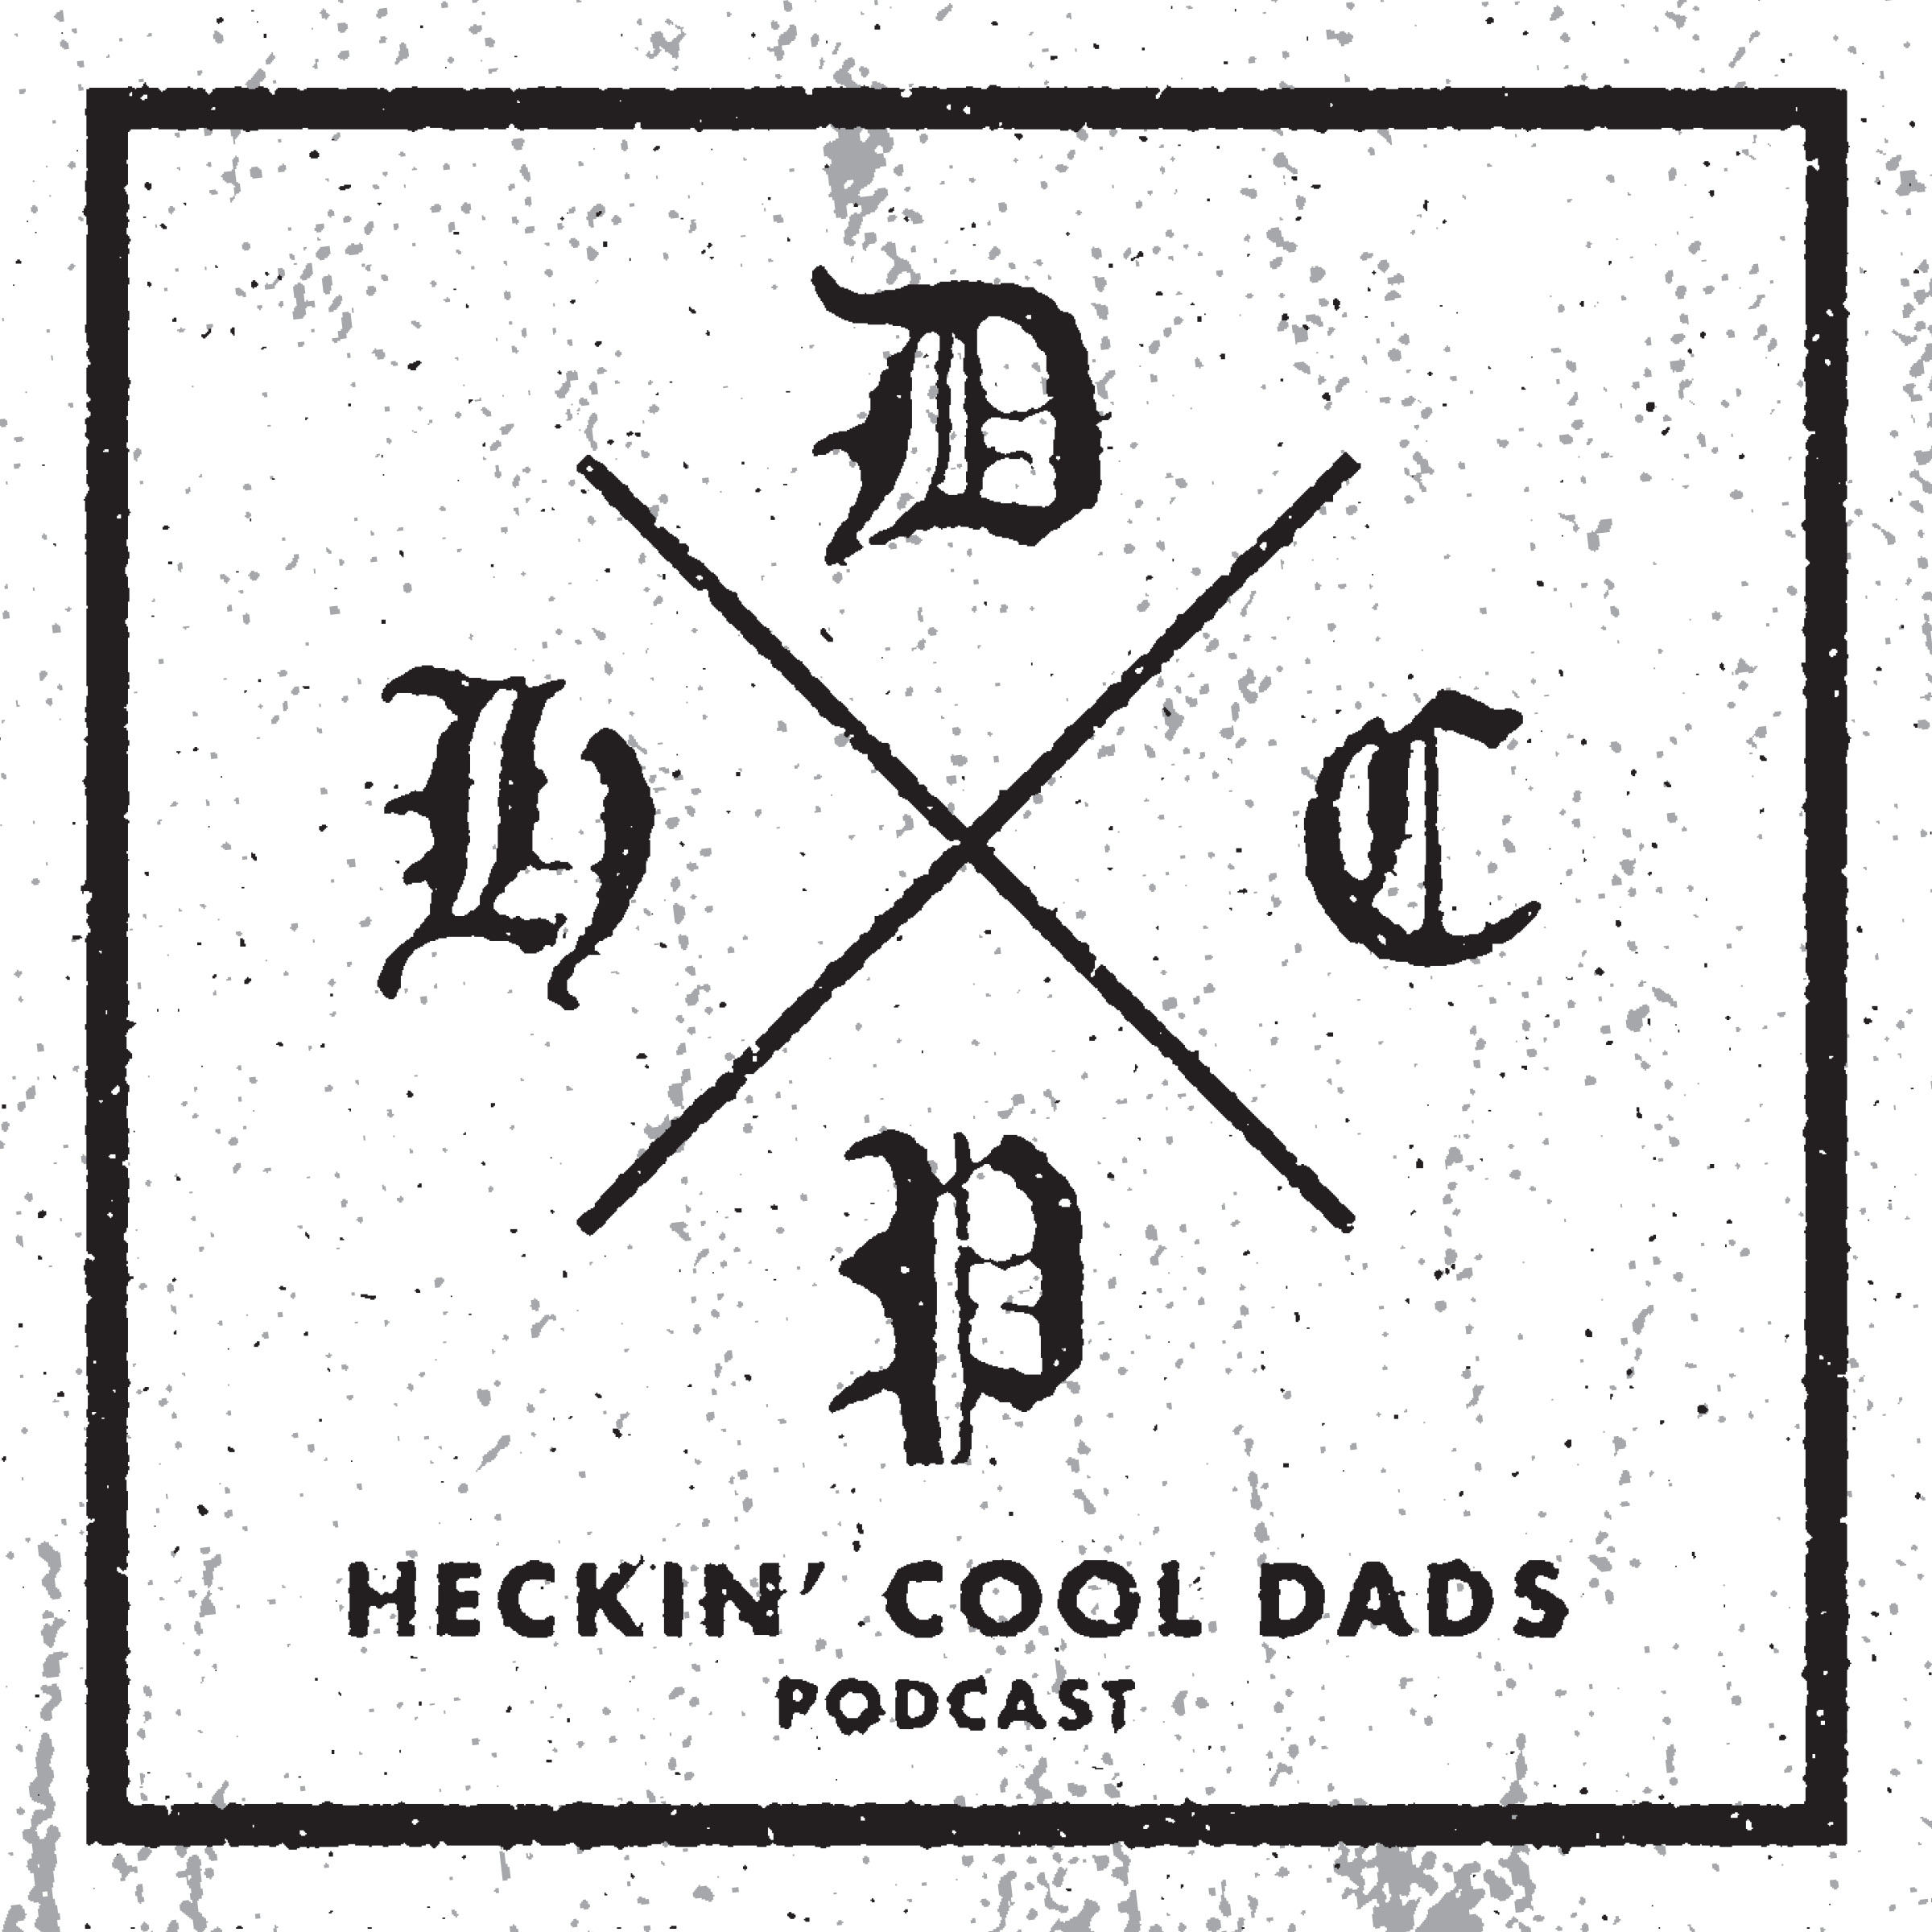 Heckin Cool Dads Podcast